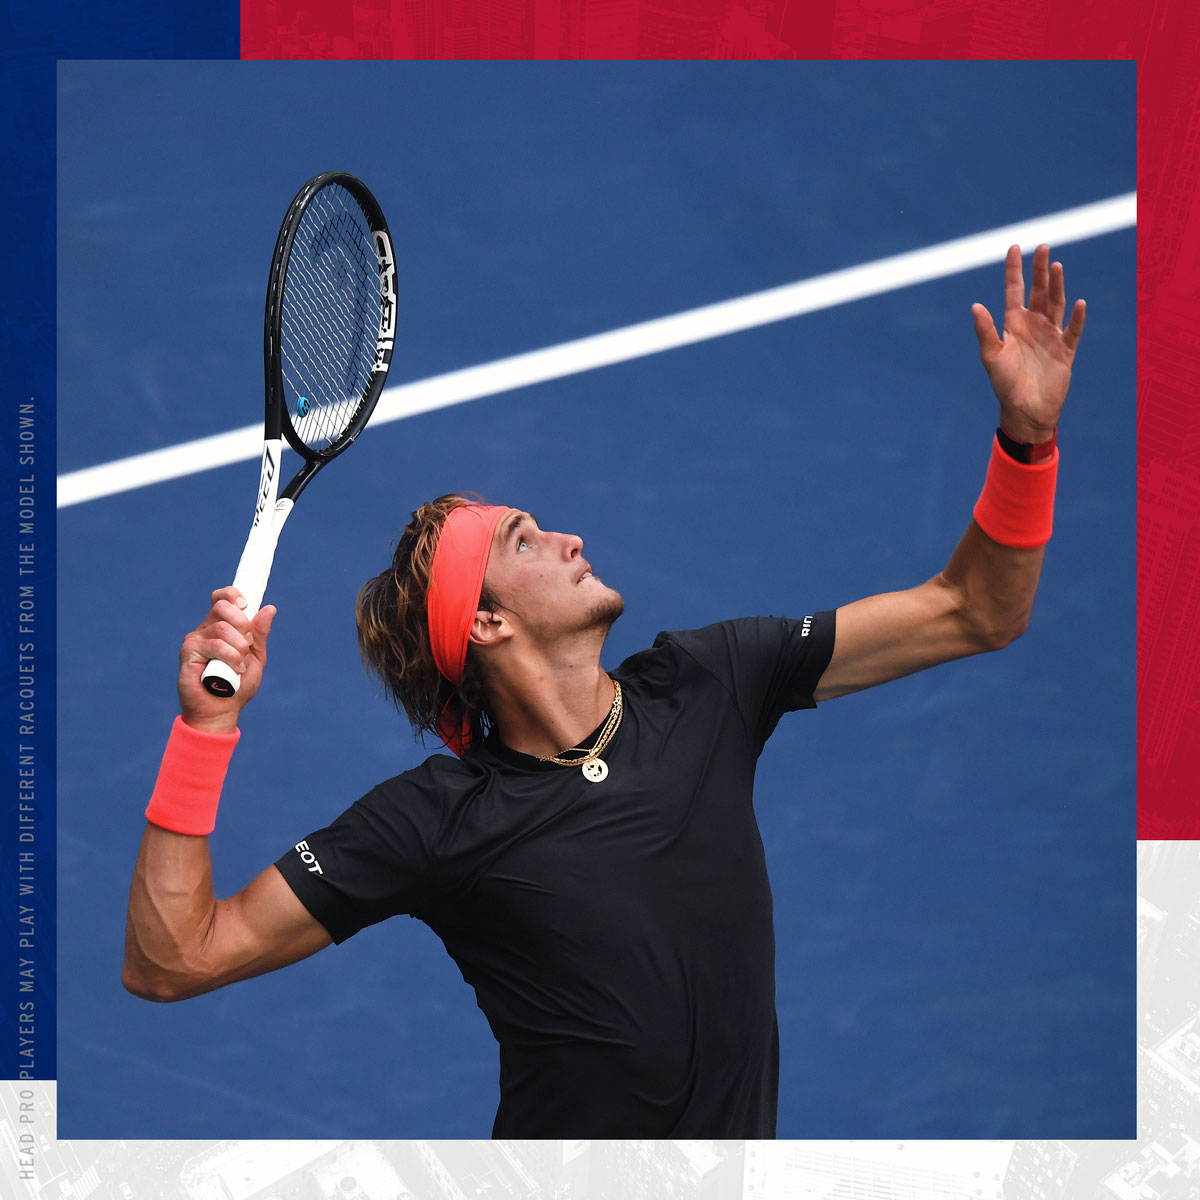 pzzverev-alex-18us-h24